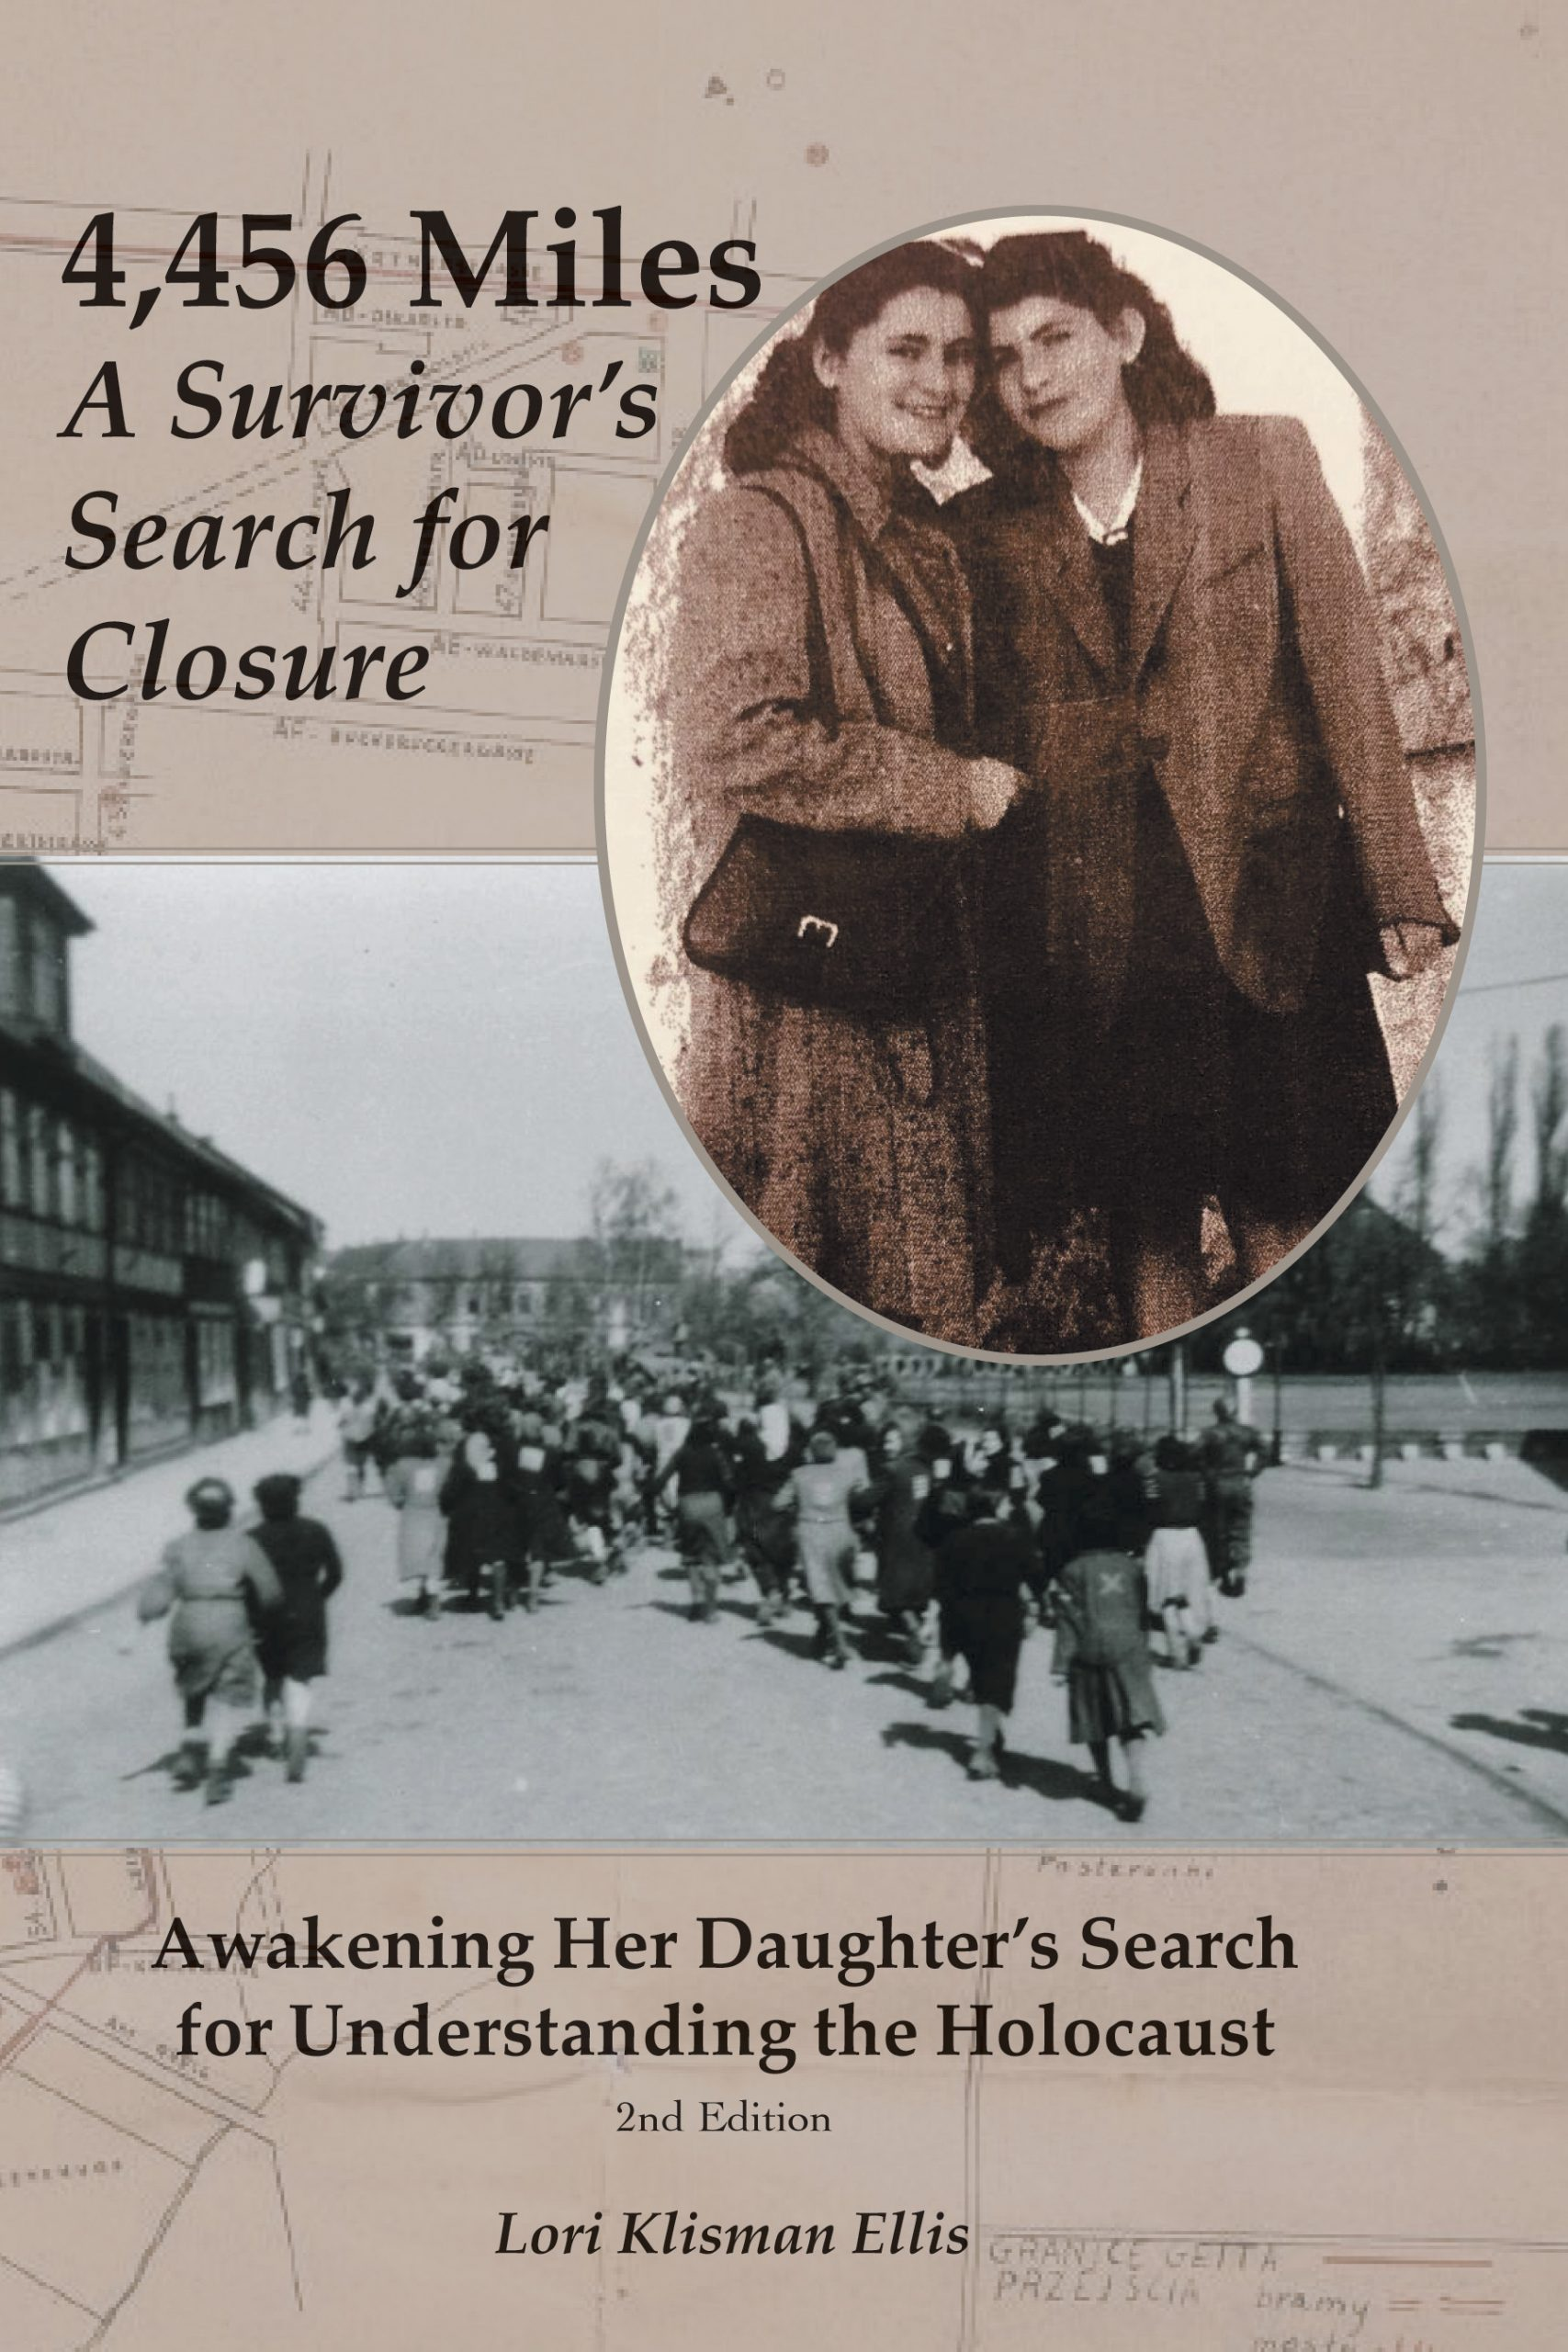 Book cover image of 4456 Miles: A Survivor's Search for Closure